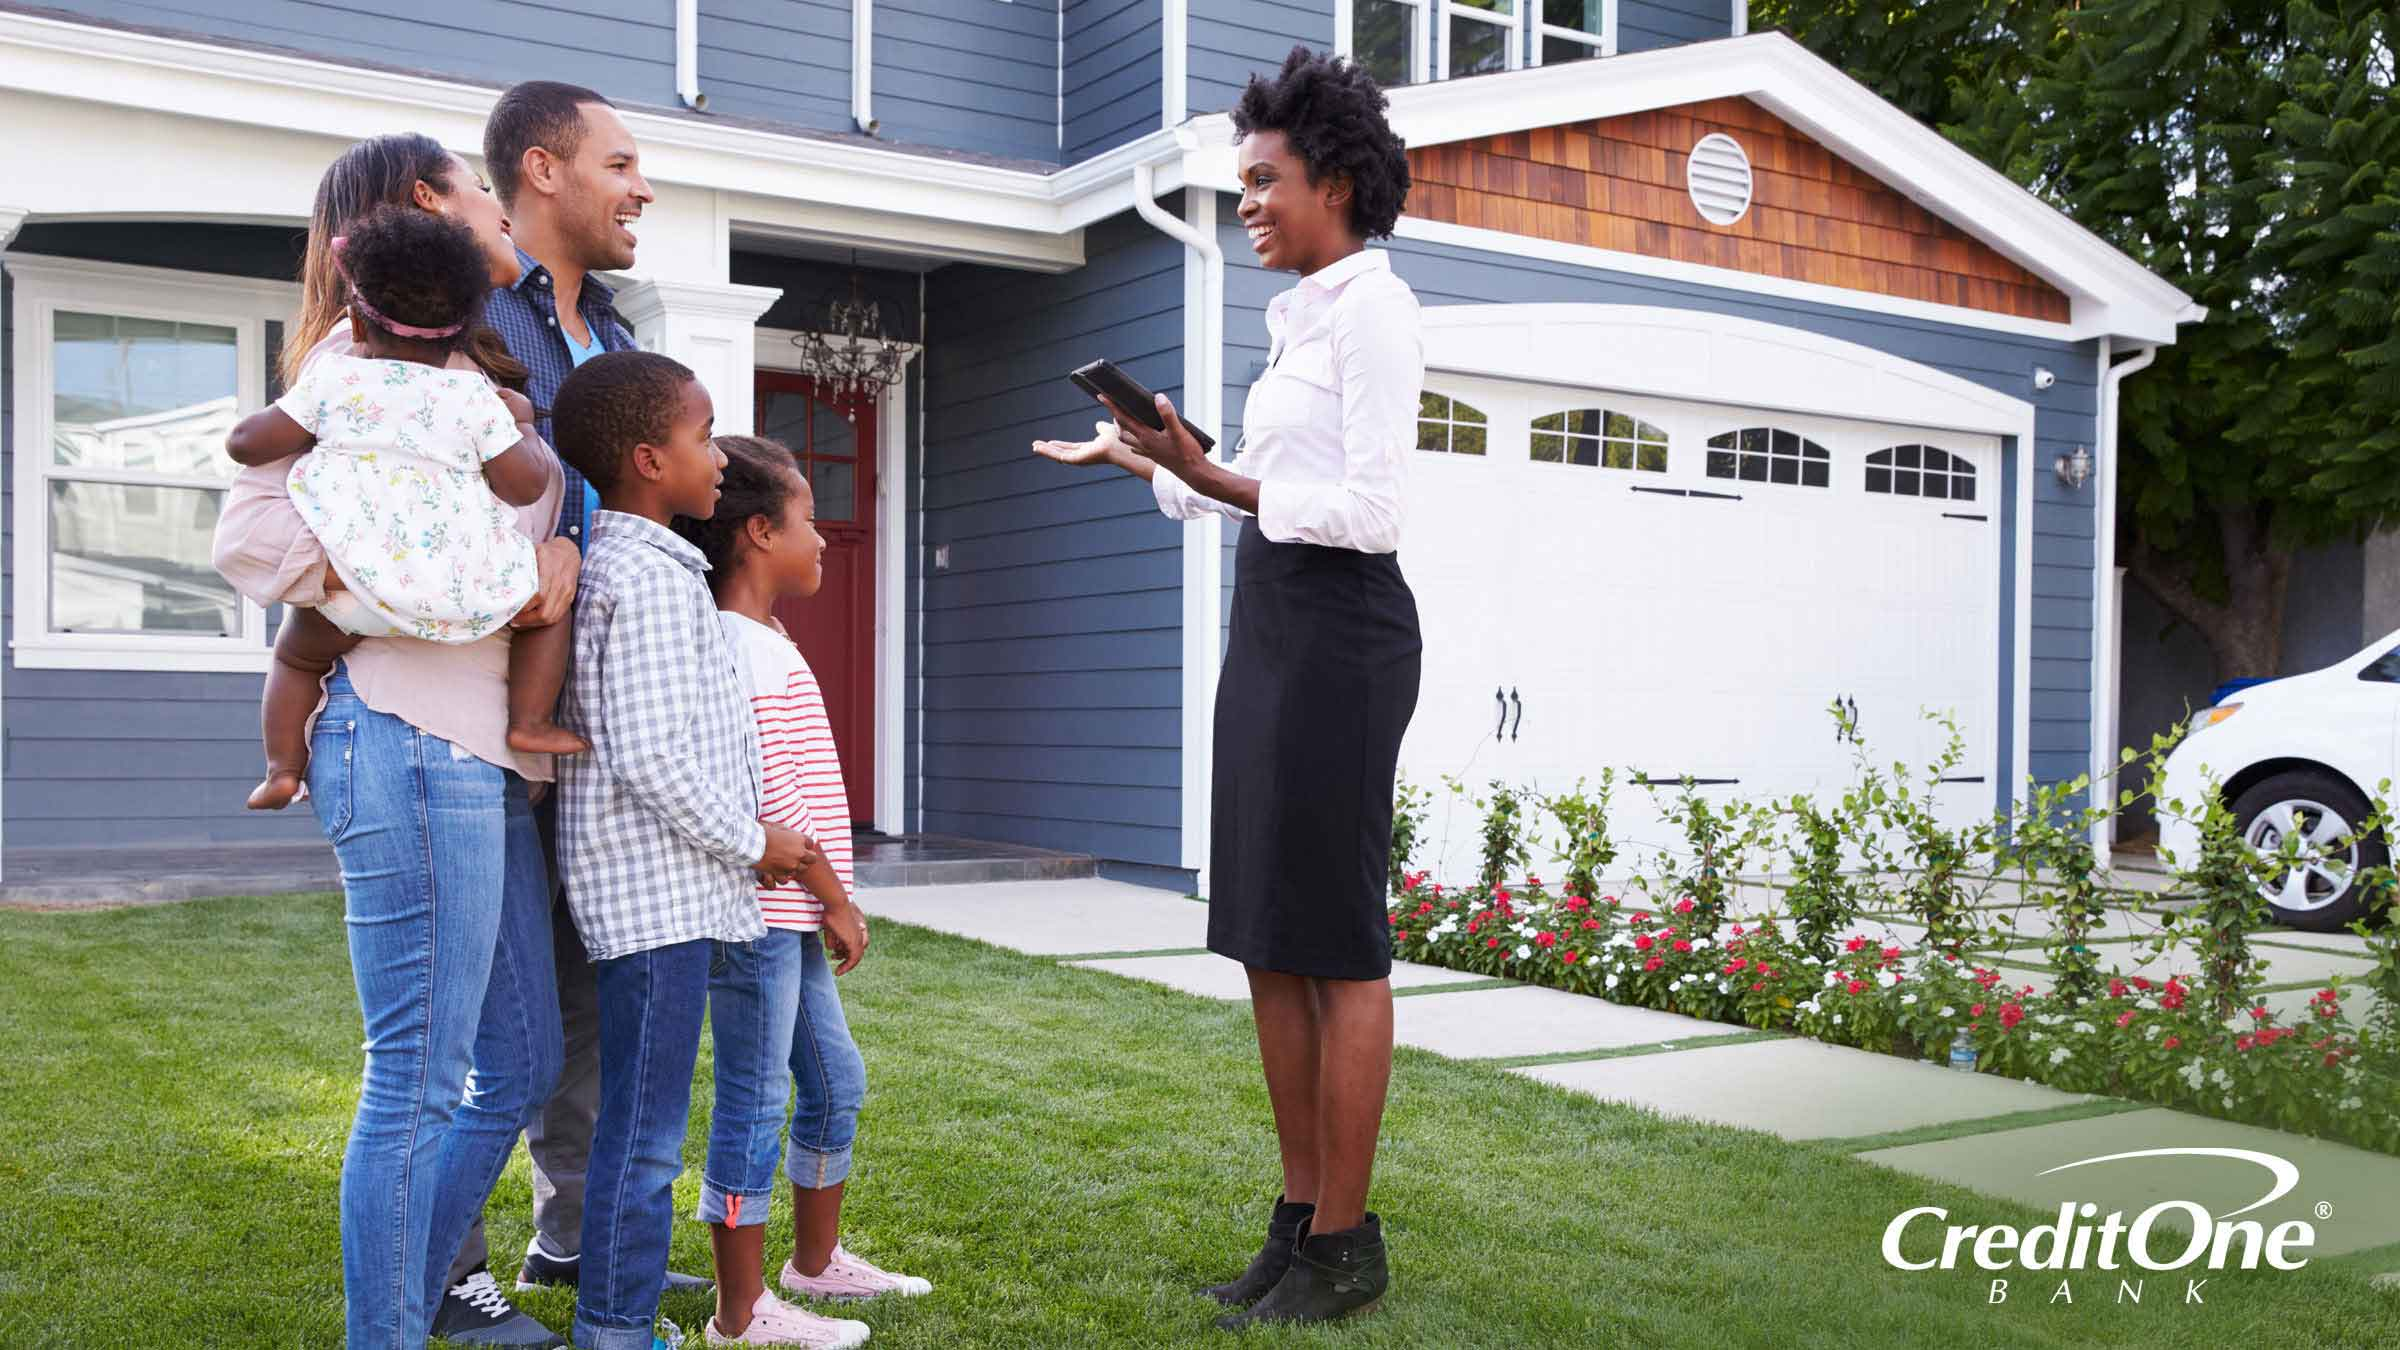 A good credit score puts a family in a good position to purchase a new home